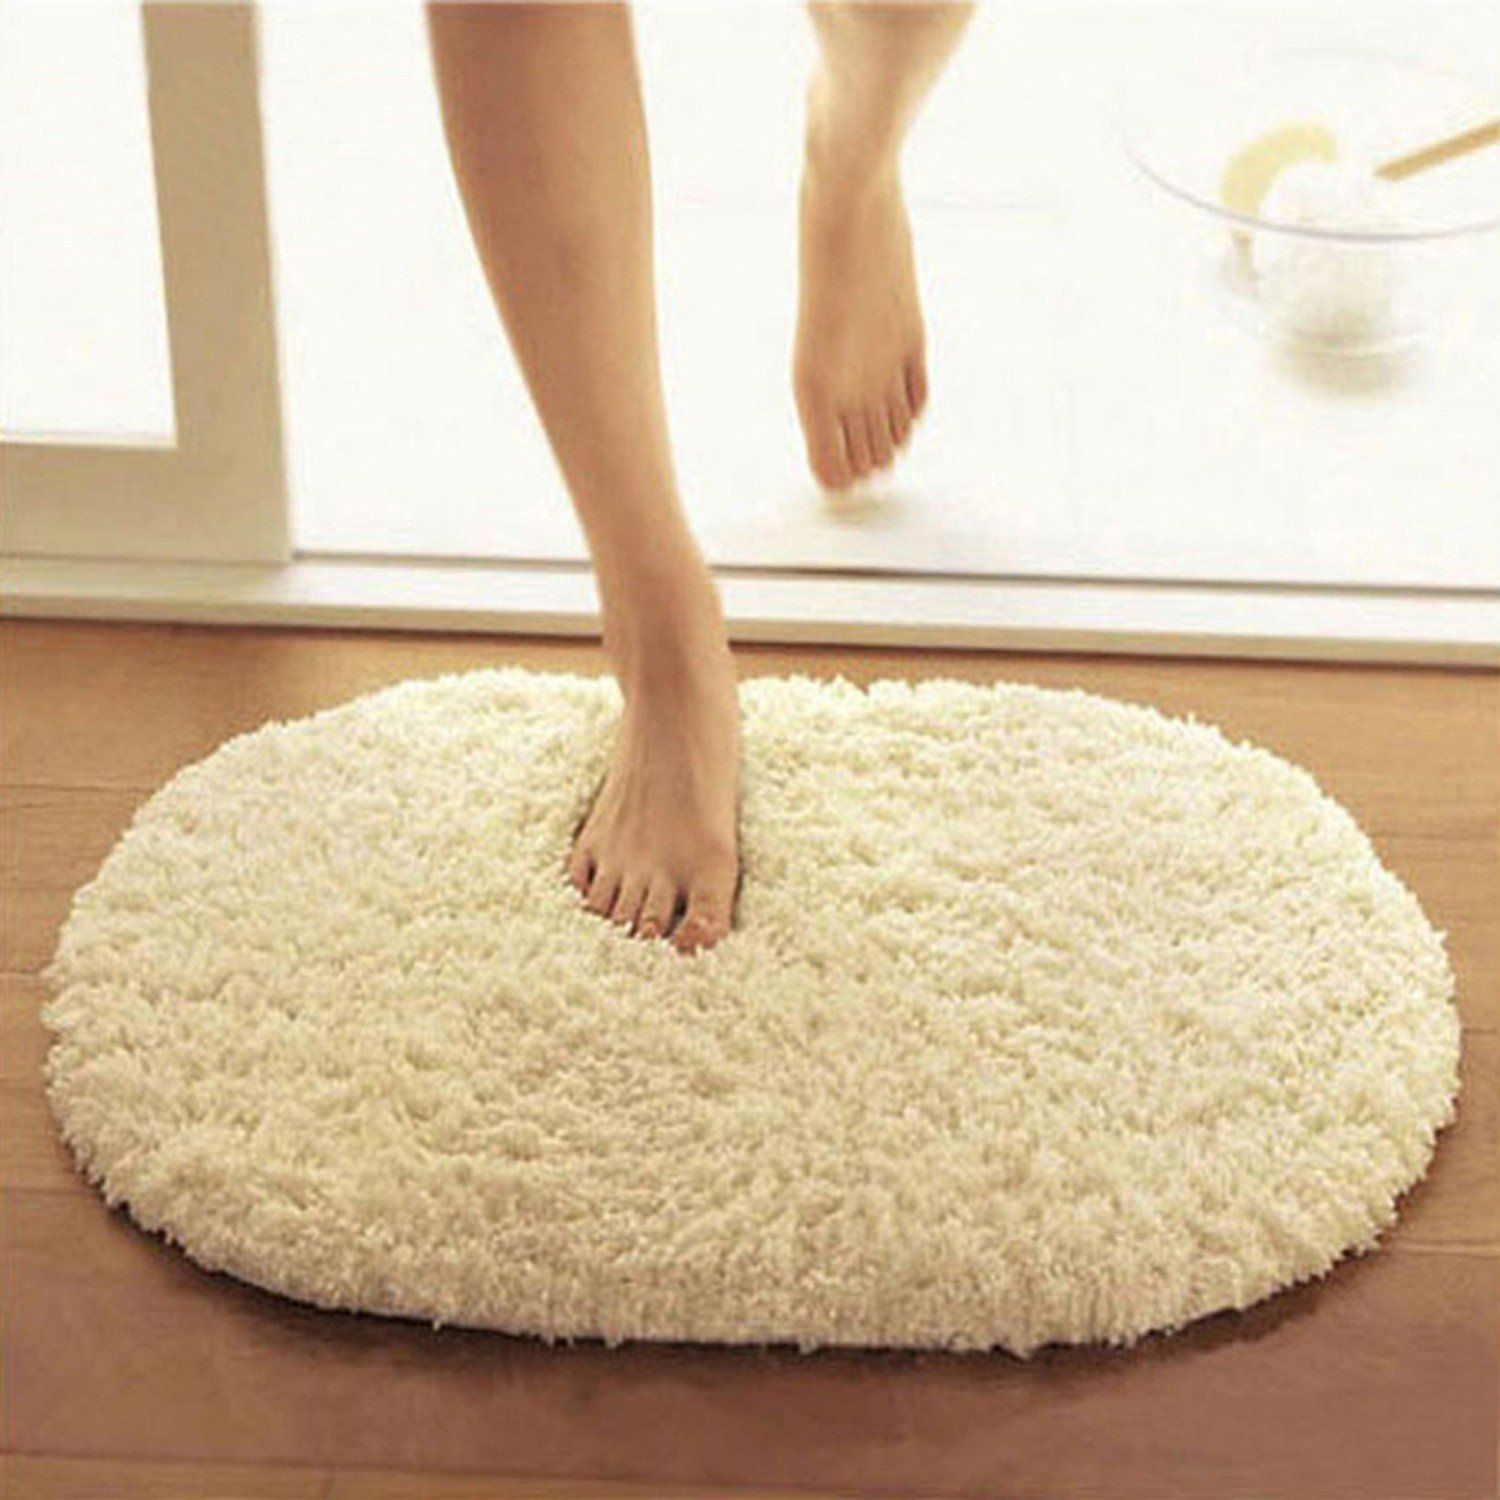 Bathroom Mat Carpets Absorbent Soft Memory Foam Doormat Floor Rugs